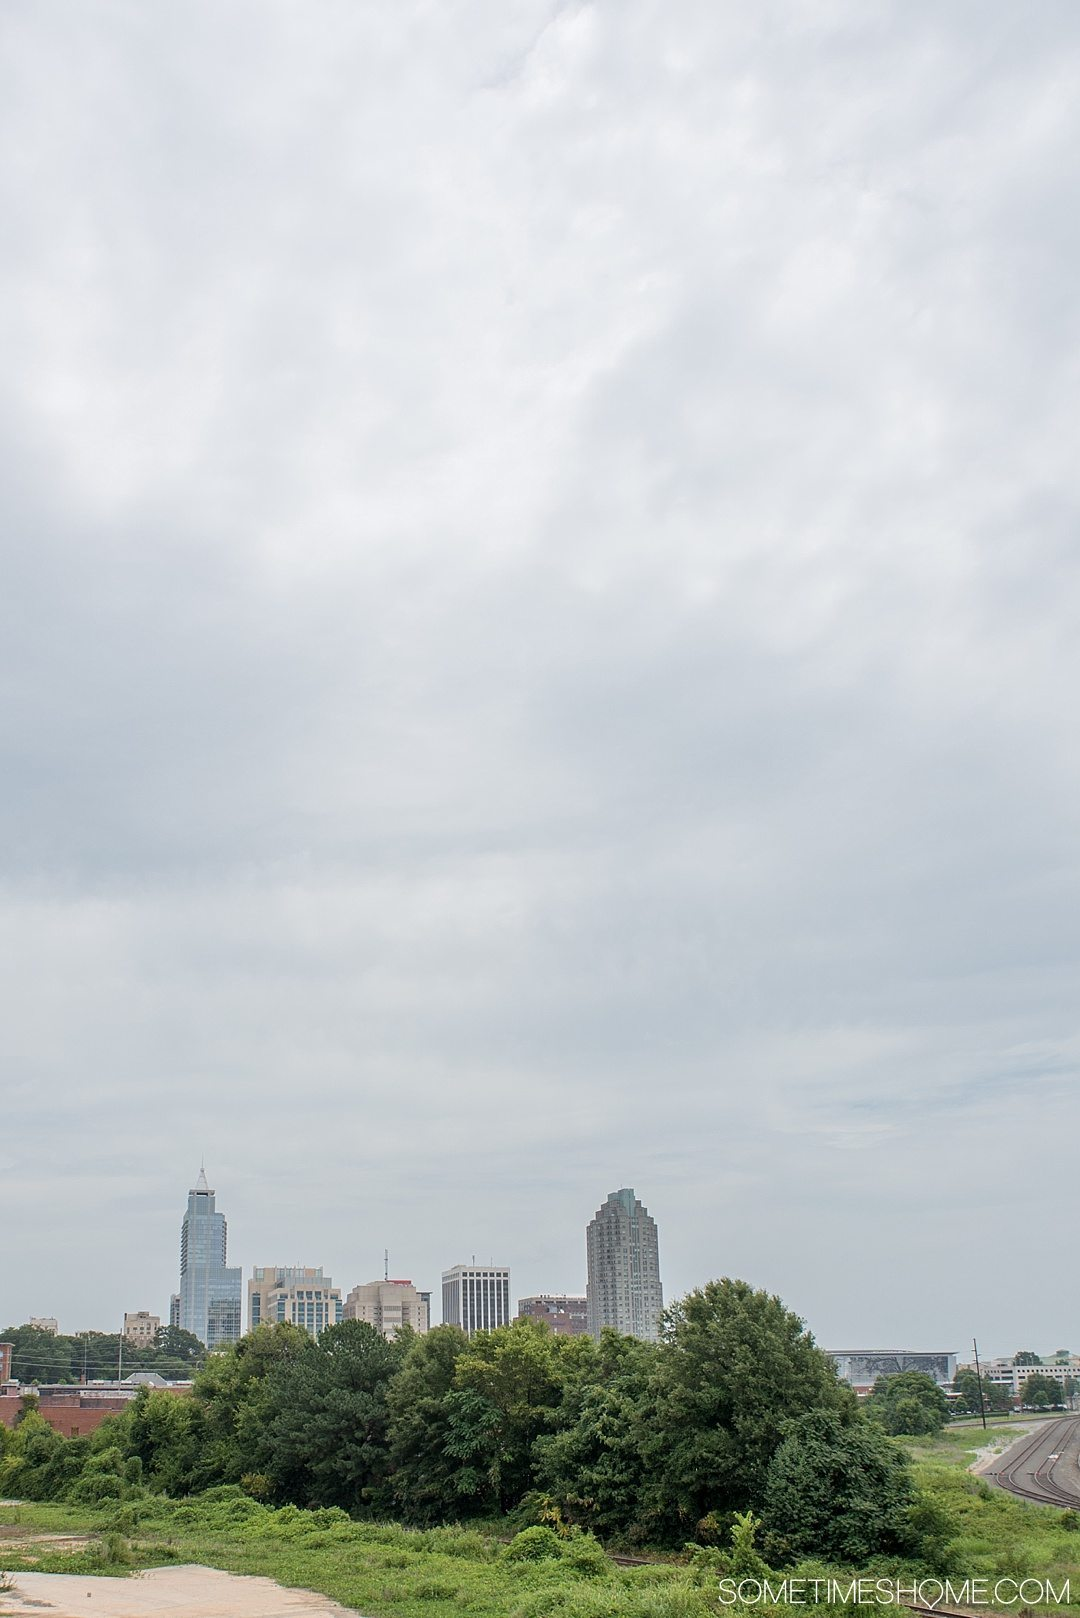 10 Best Downtown Raleigh Photography Spots on Sometimes Home travel blog. Photo of the view from Boylan Bridge.